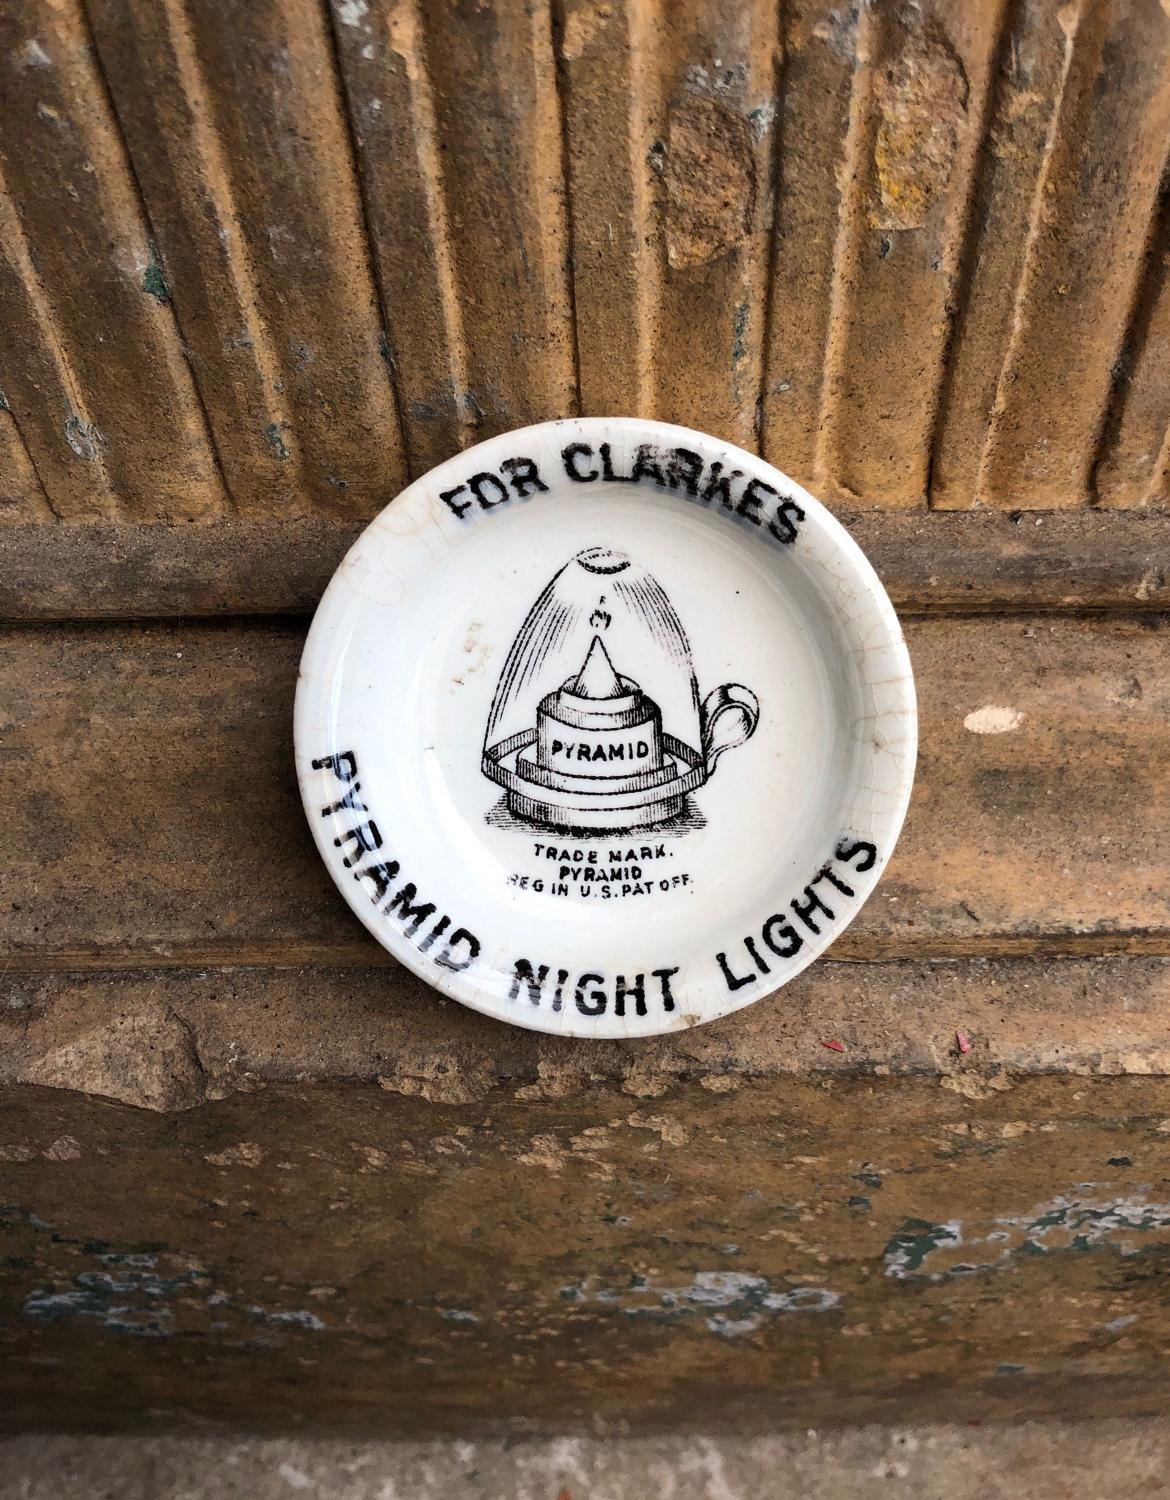 Edwardian Advertising Clarkes Pyramid Night Light Holder